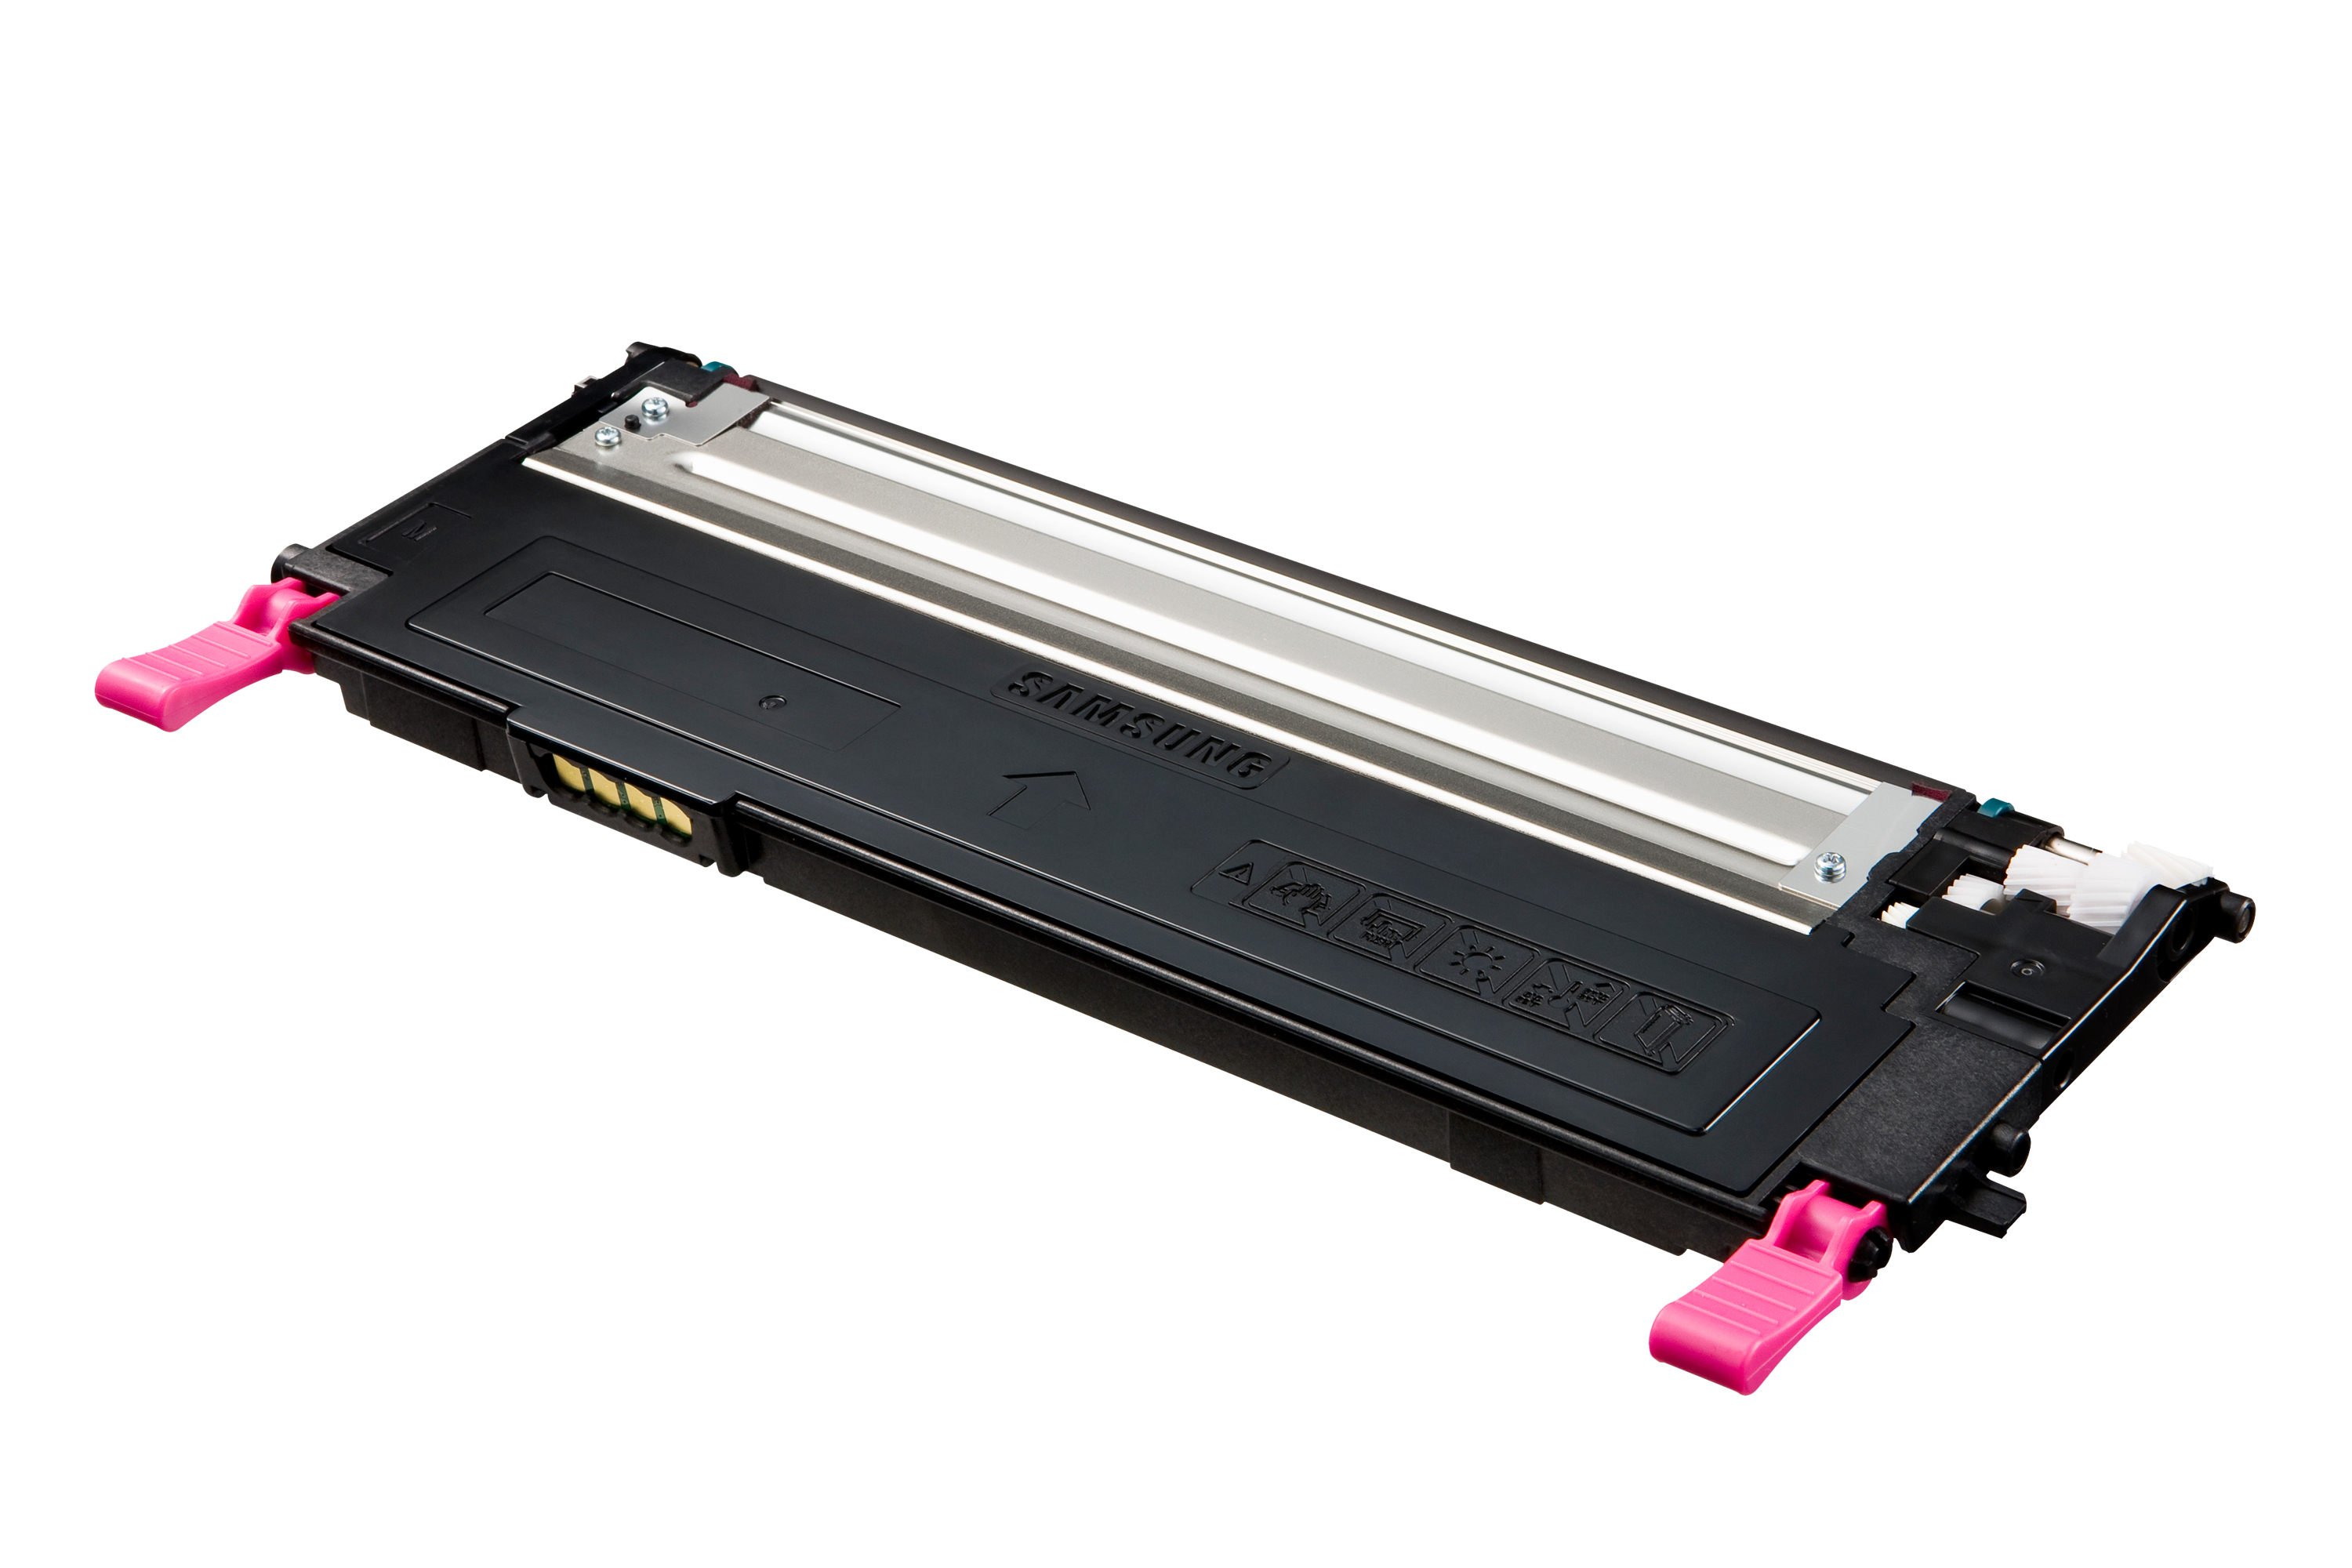 Remanufactured Samsung CLT-M4092S Toner Cartridge Magenta 1k CLT-M4092S - rem01